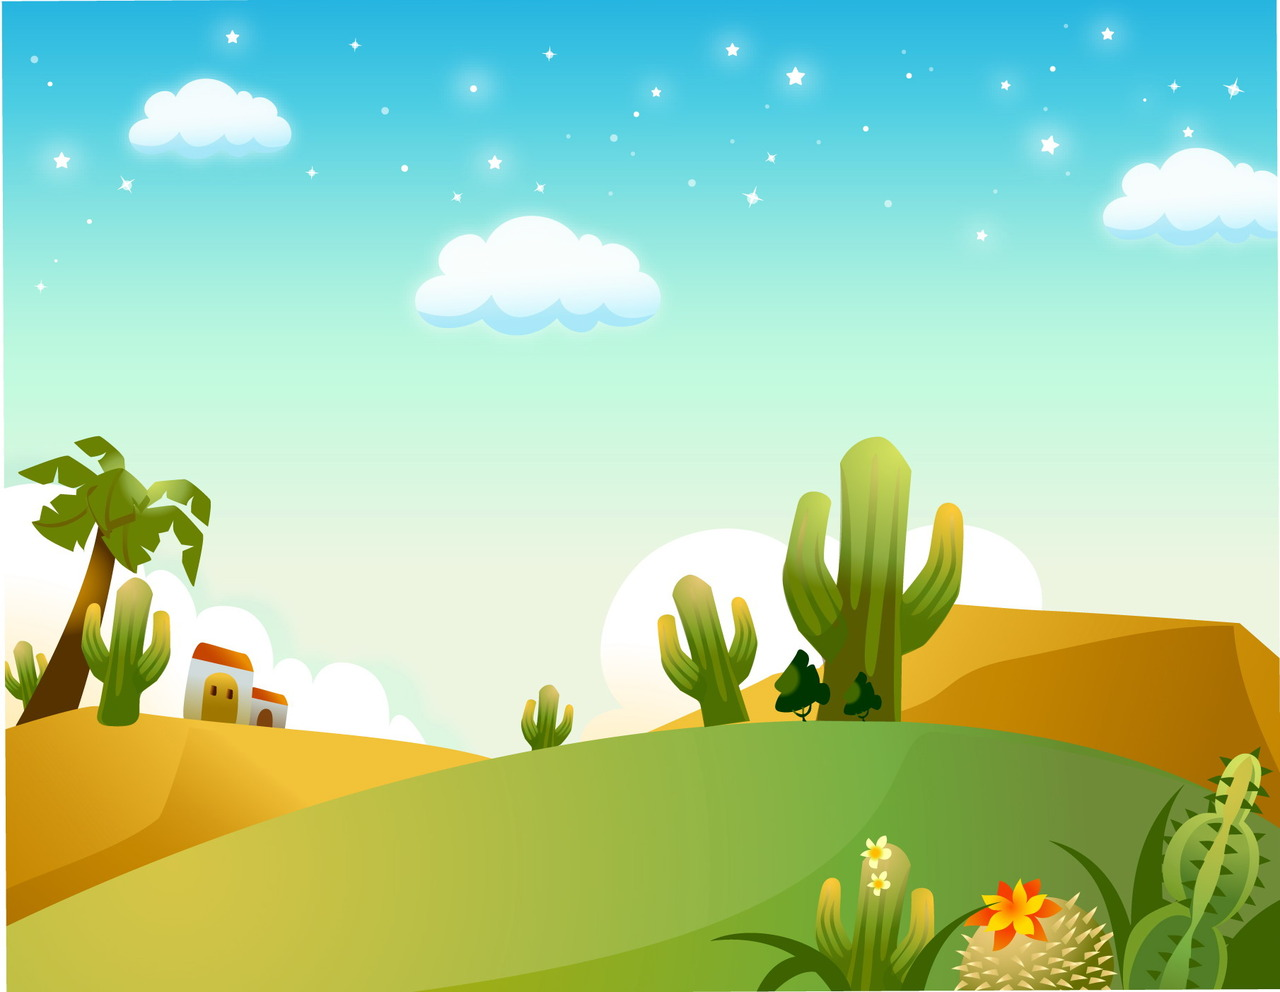 amazing cartoon hd wallpaper free download 1080p 2013 - Excellent Hd Quality of Image Sharing